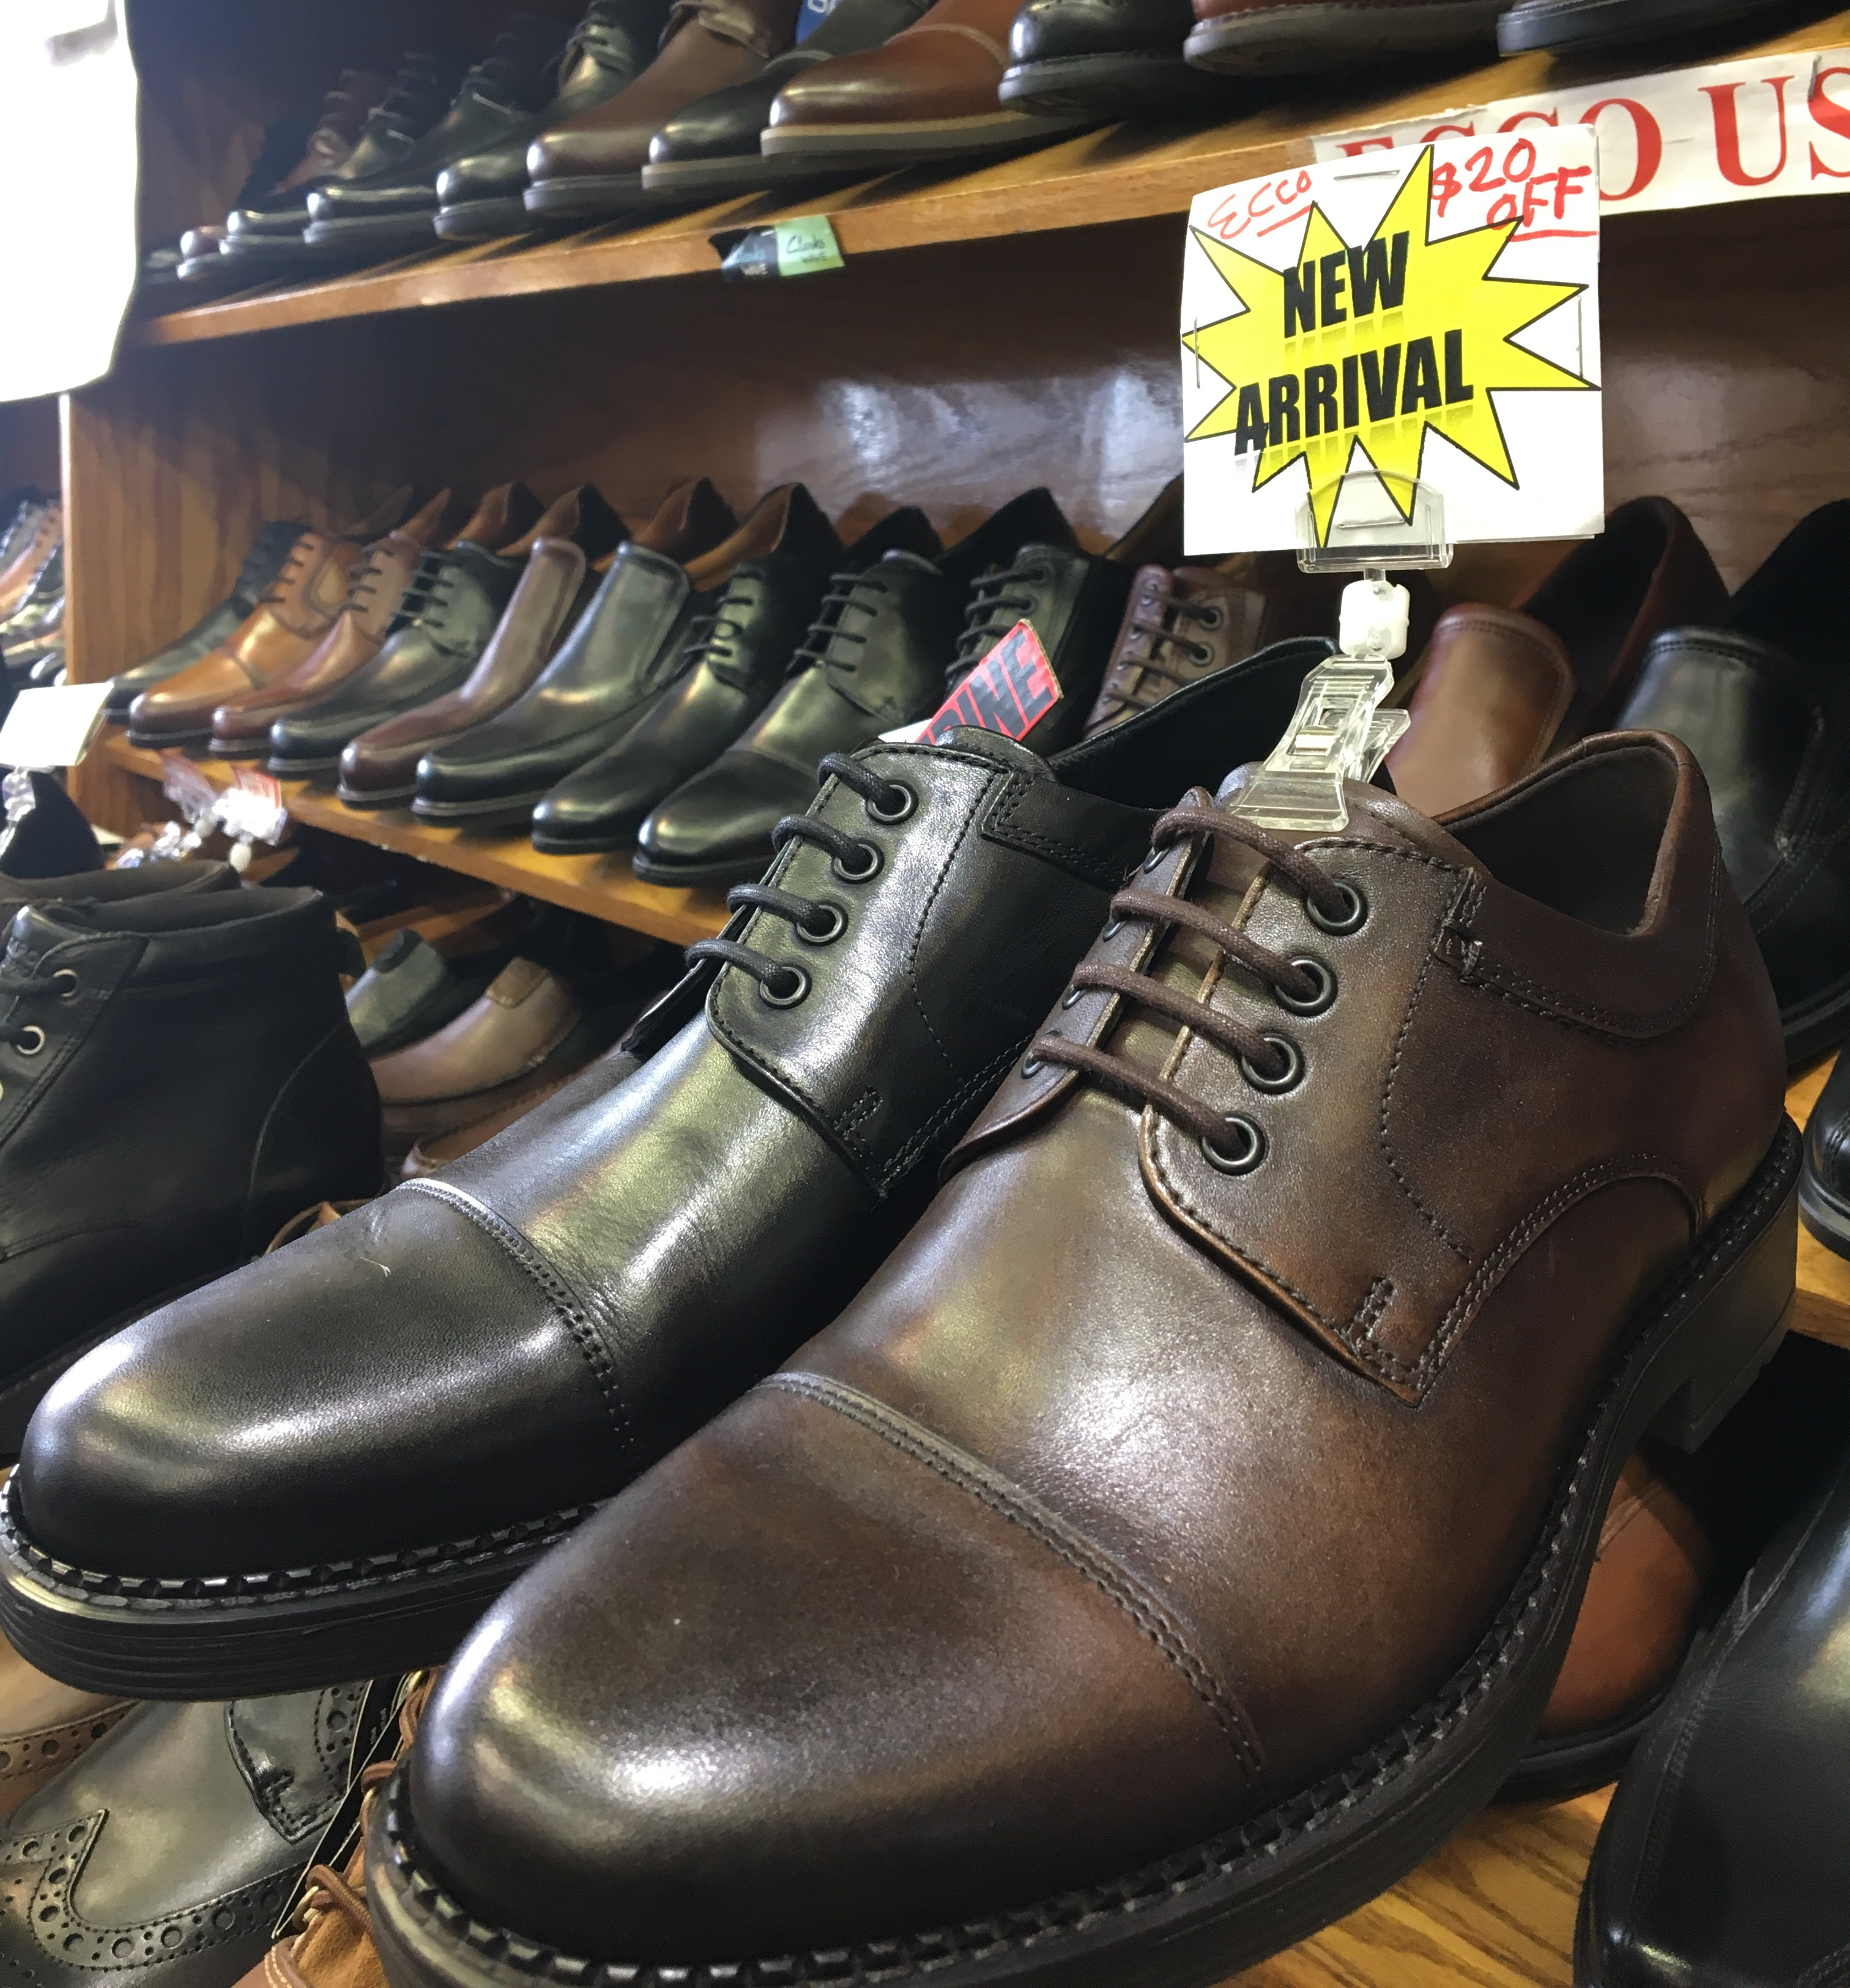 3044ce86d01 Eric Comfort Shoes steps into 76th year - News - The Island Now